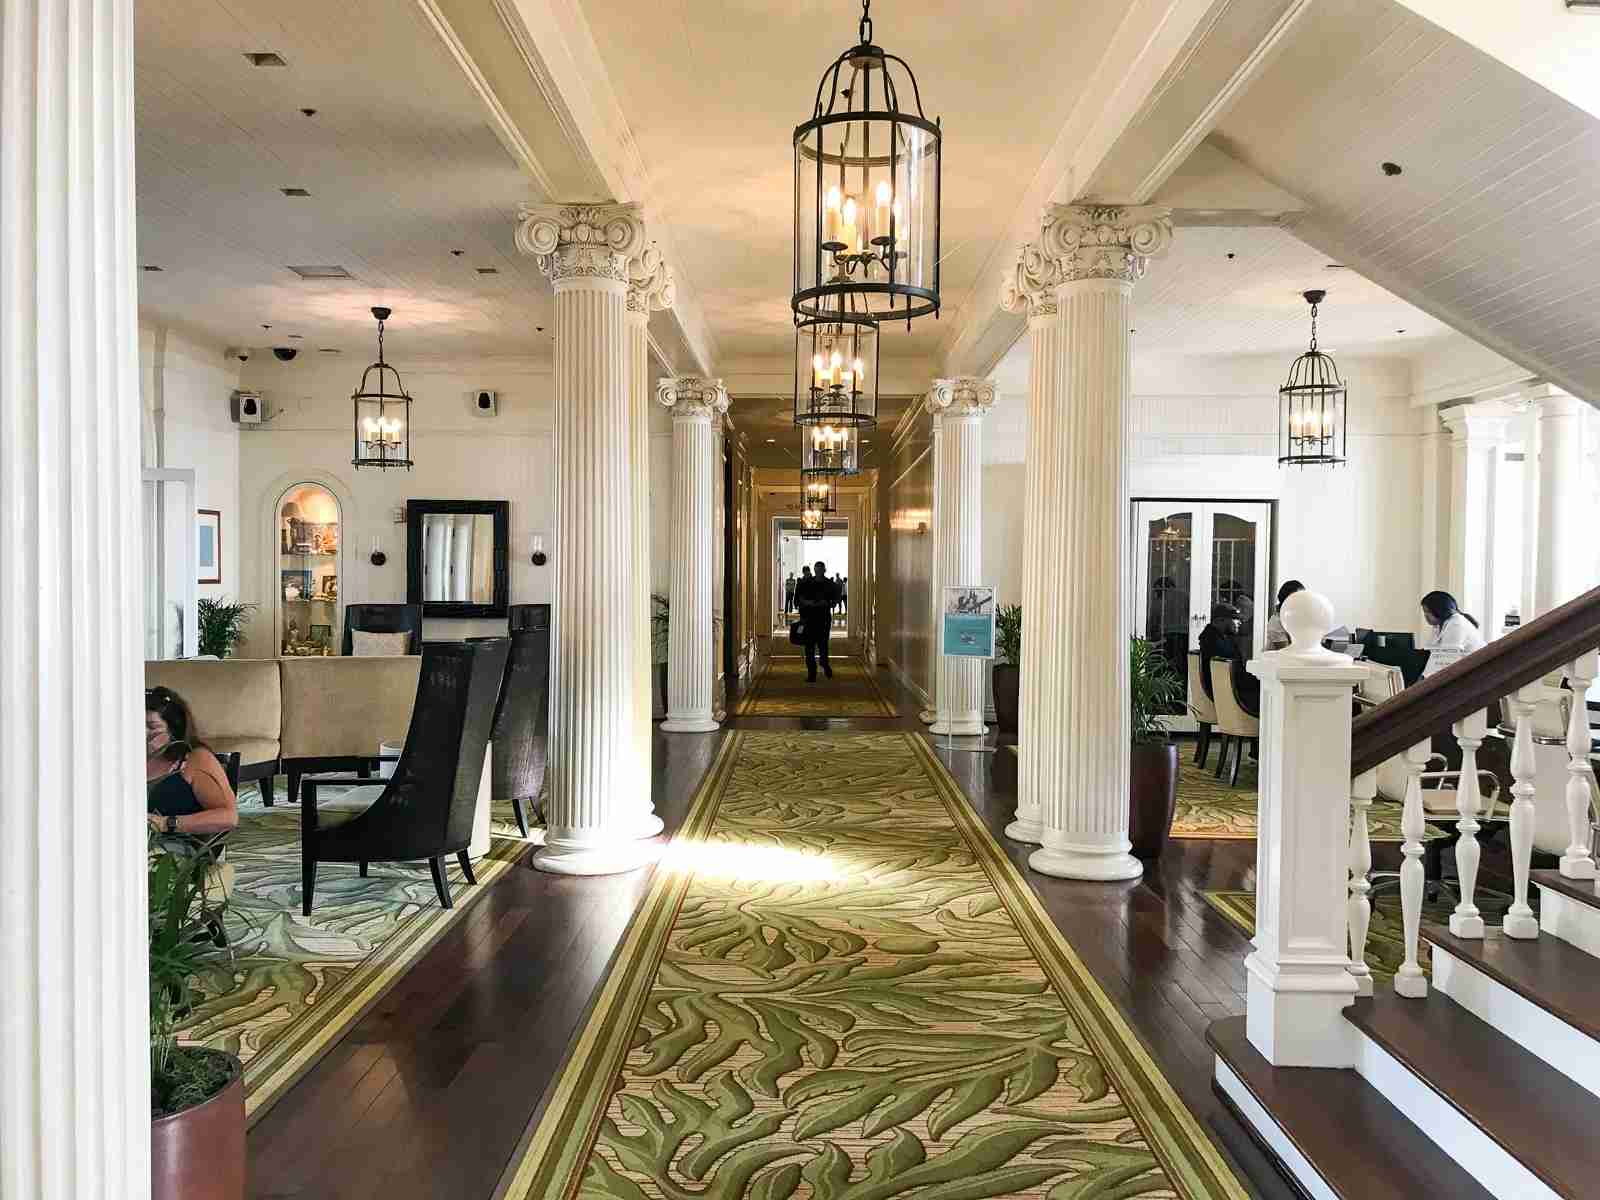 Moana Surfrider Lobby (Summer Hull / The Points Guy)